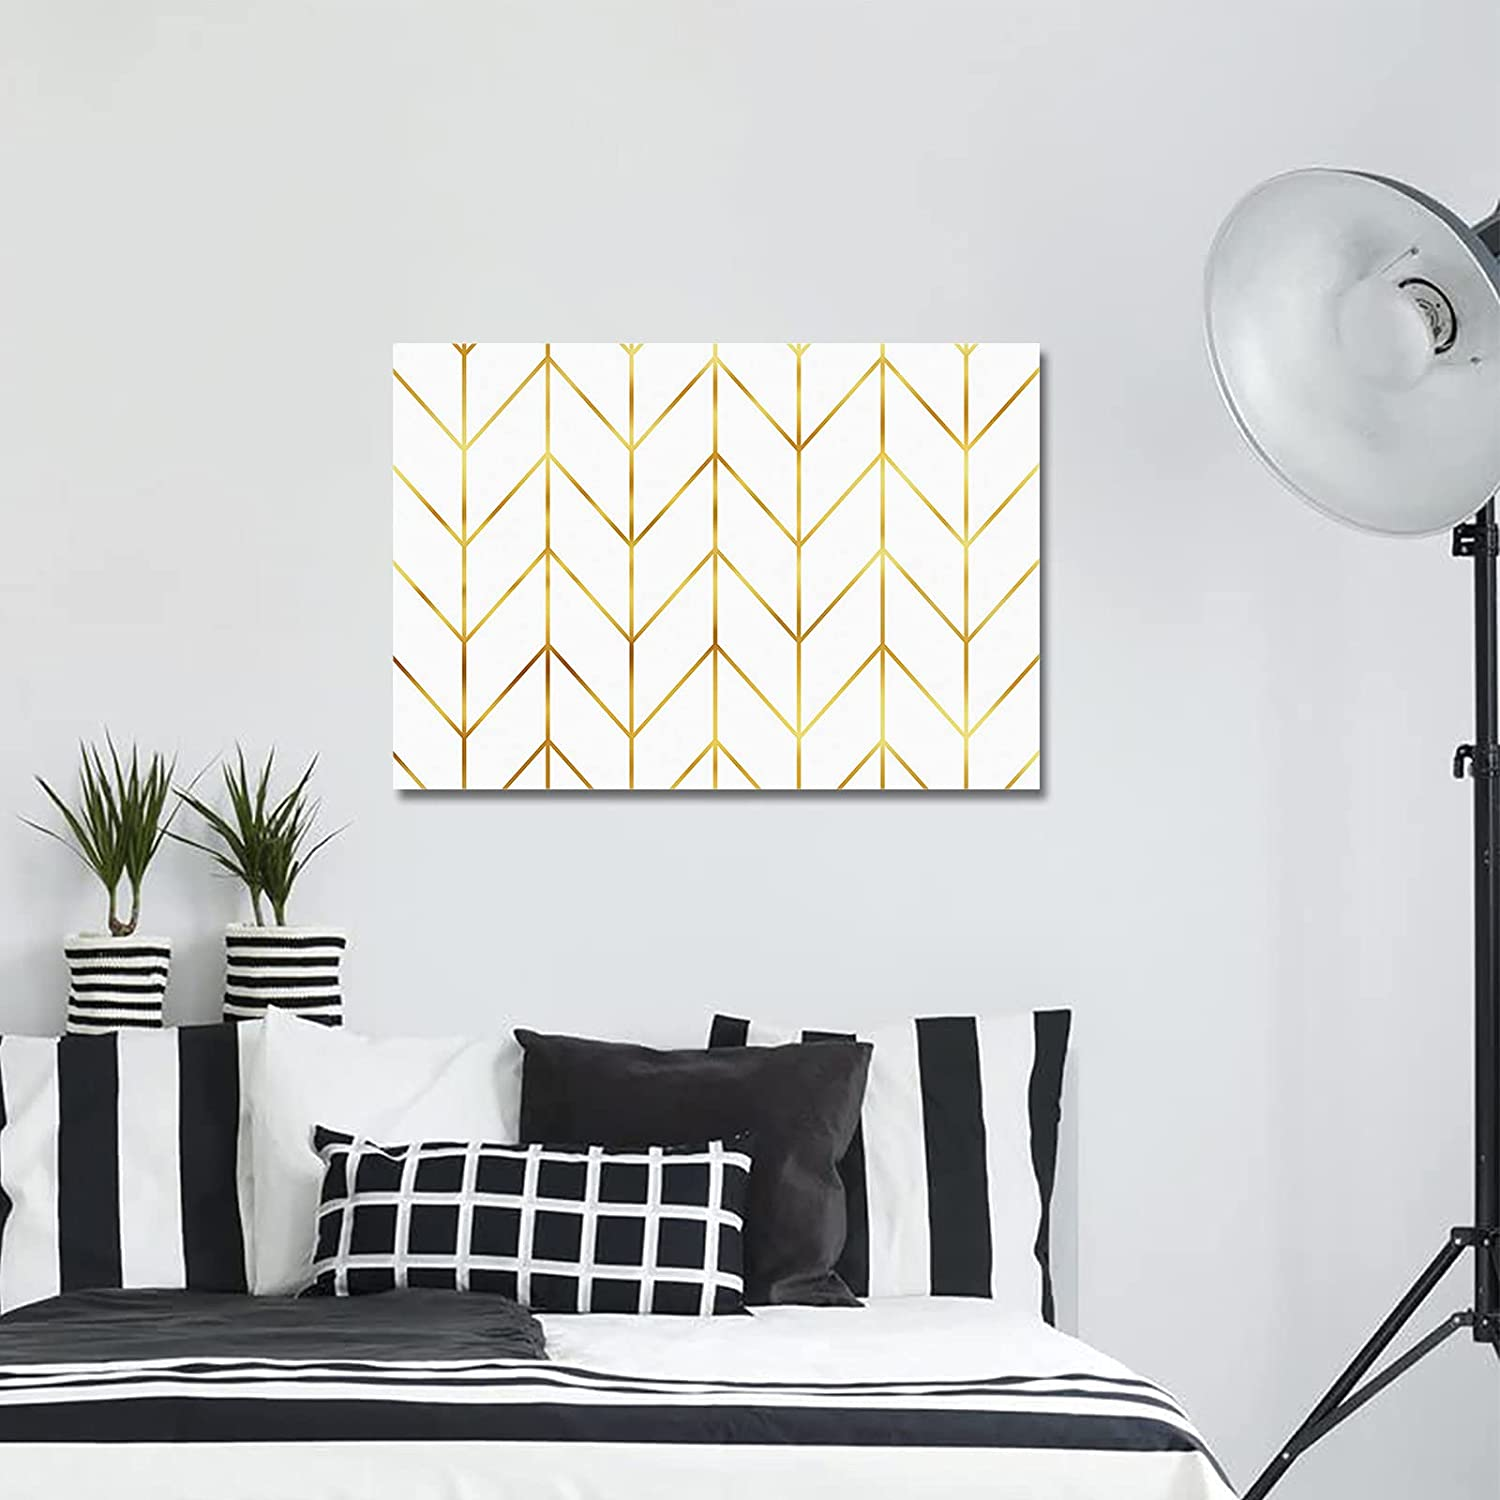 Wall Art Max 85% OFF Canvas Painting Artwork Pa Bedroom Max 69% OFF Yellow for Geometric